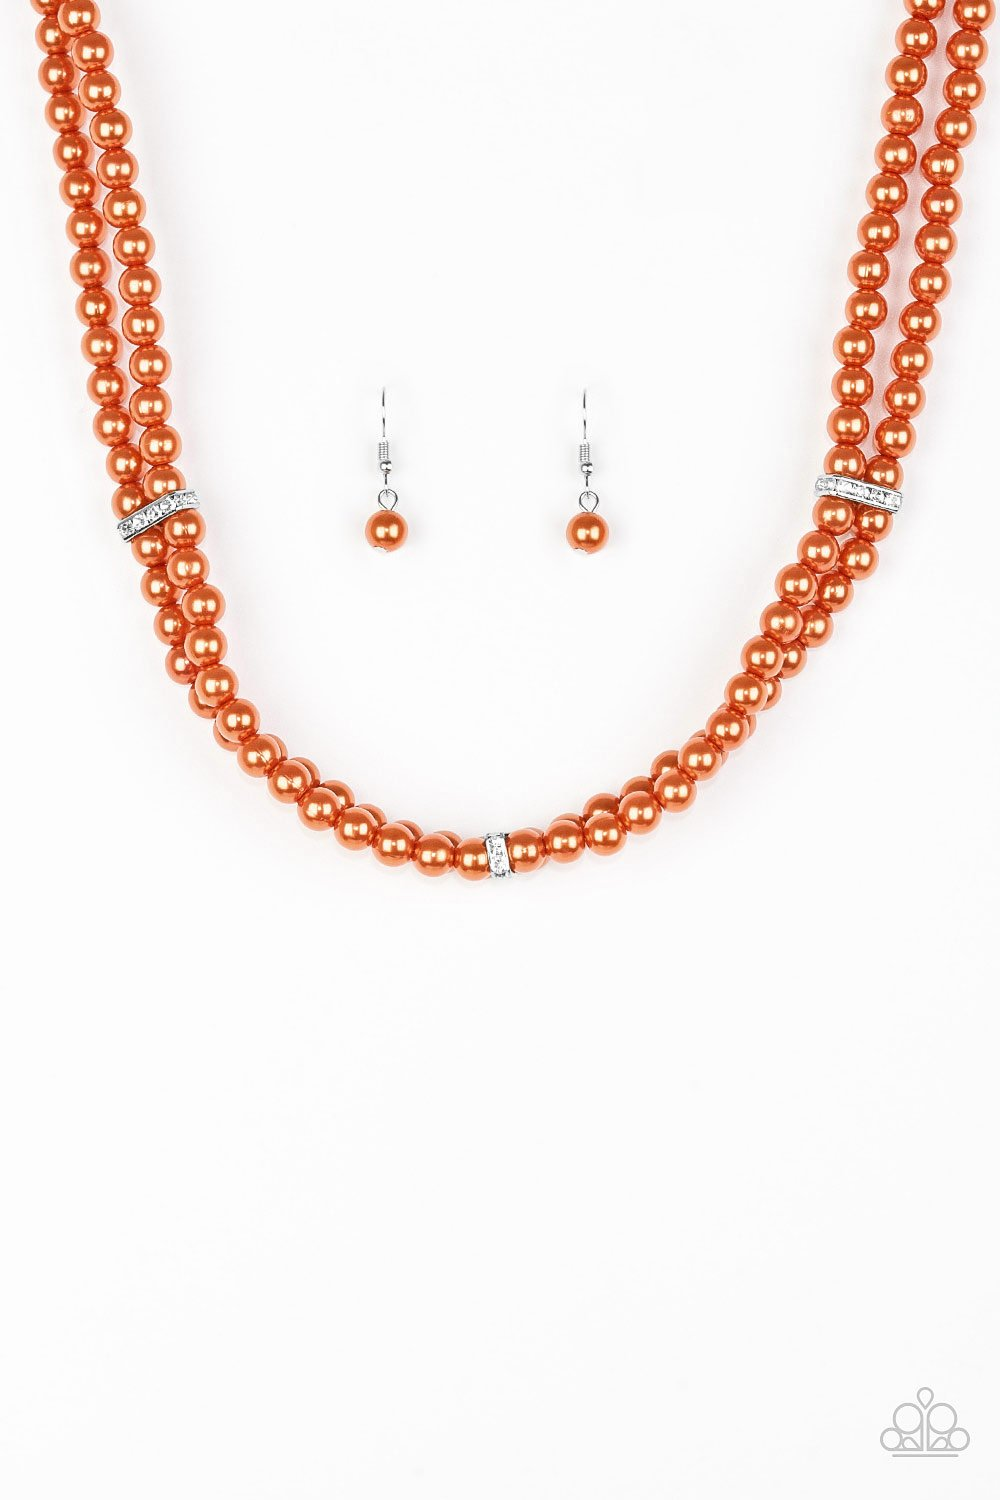 Paparazzi Accessories ~ Put On Your Party Dress - Orange